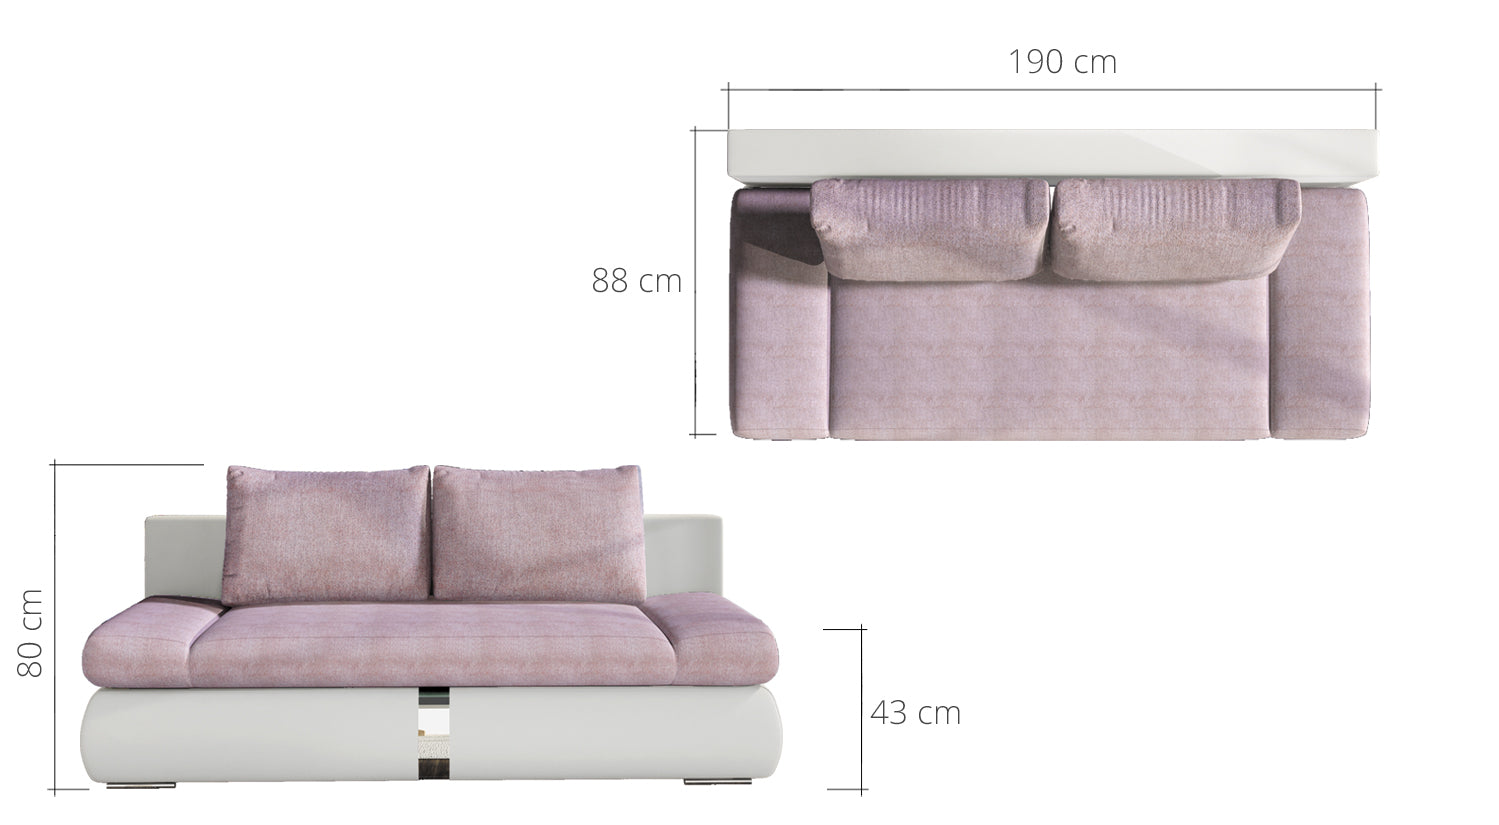 Playa Sofa Bed like picture